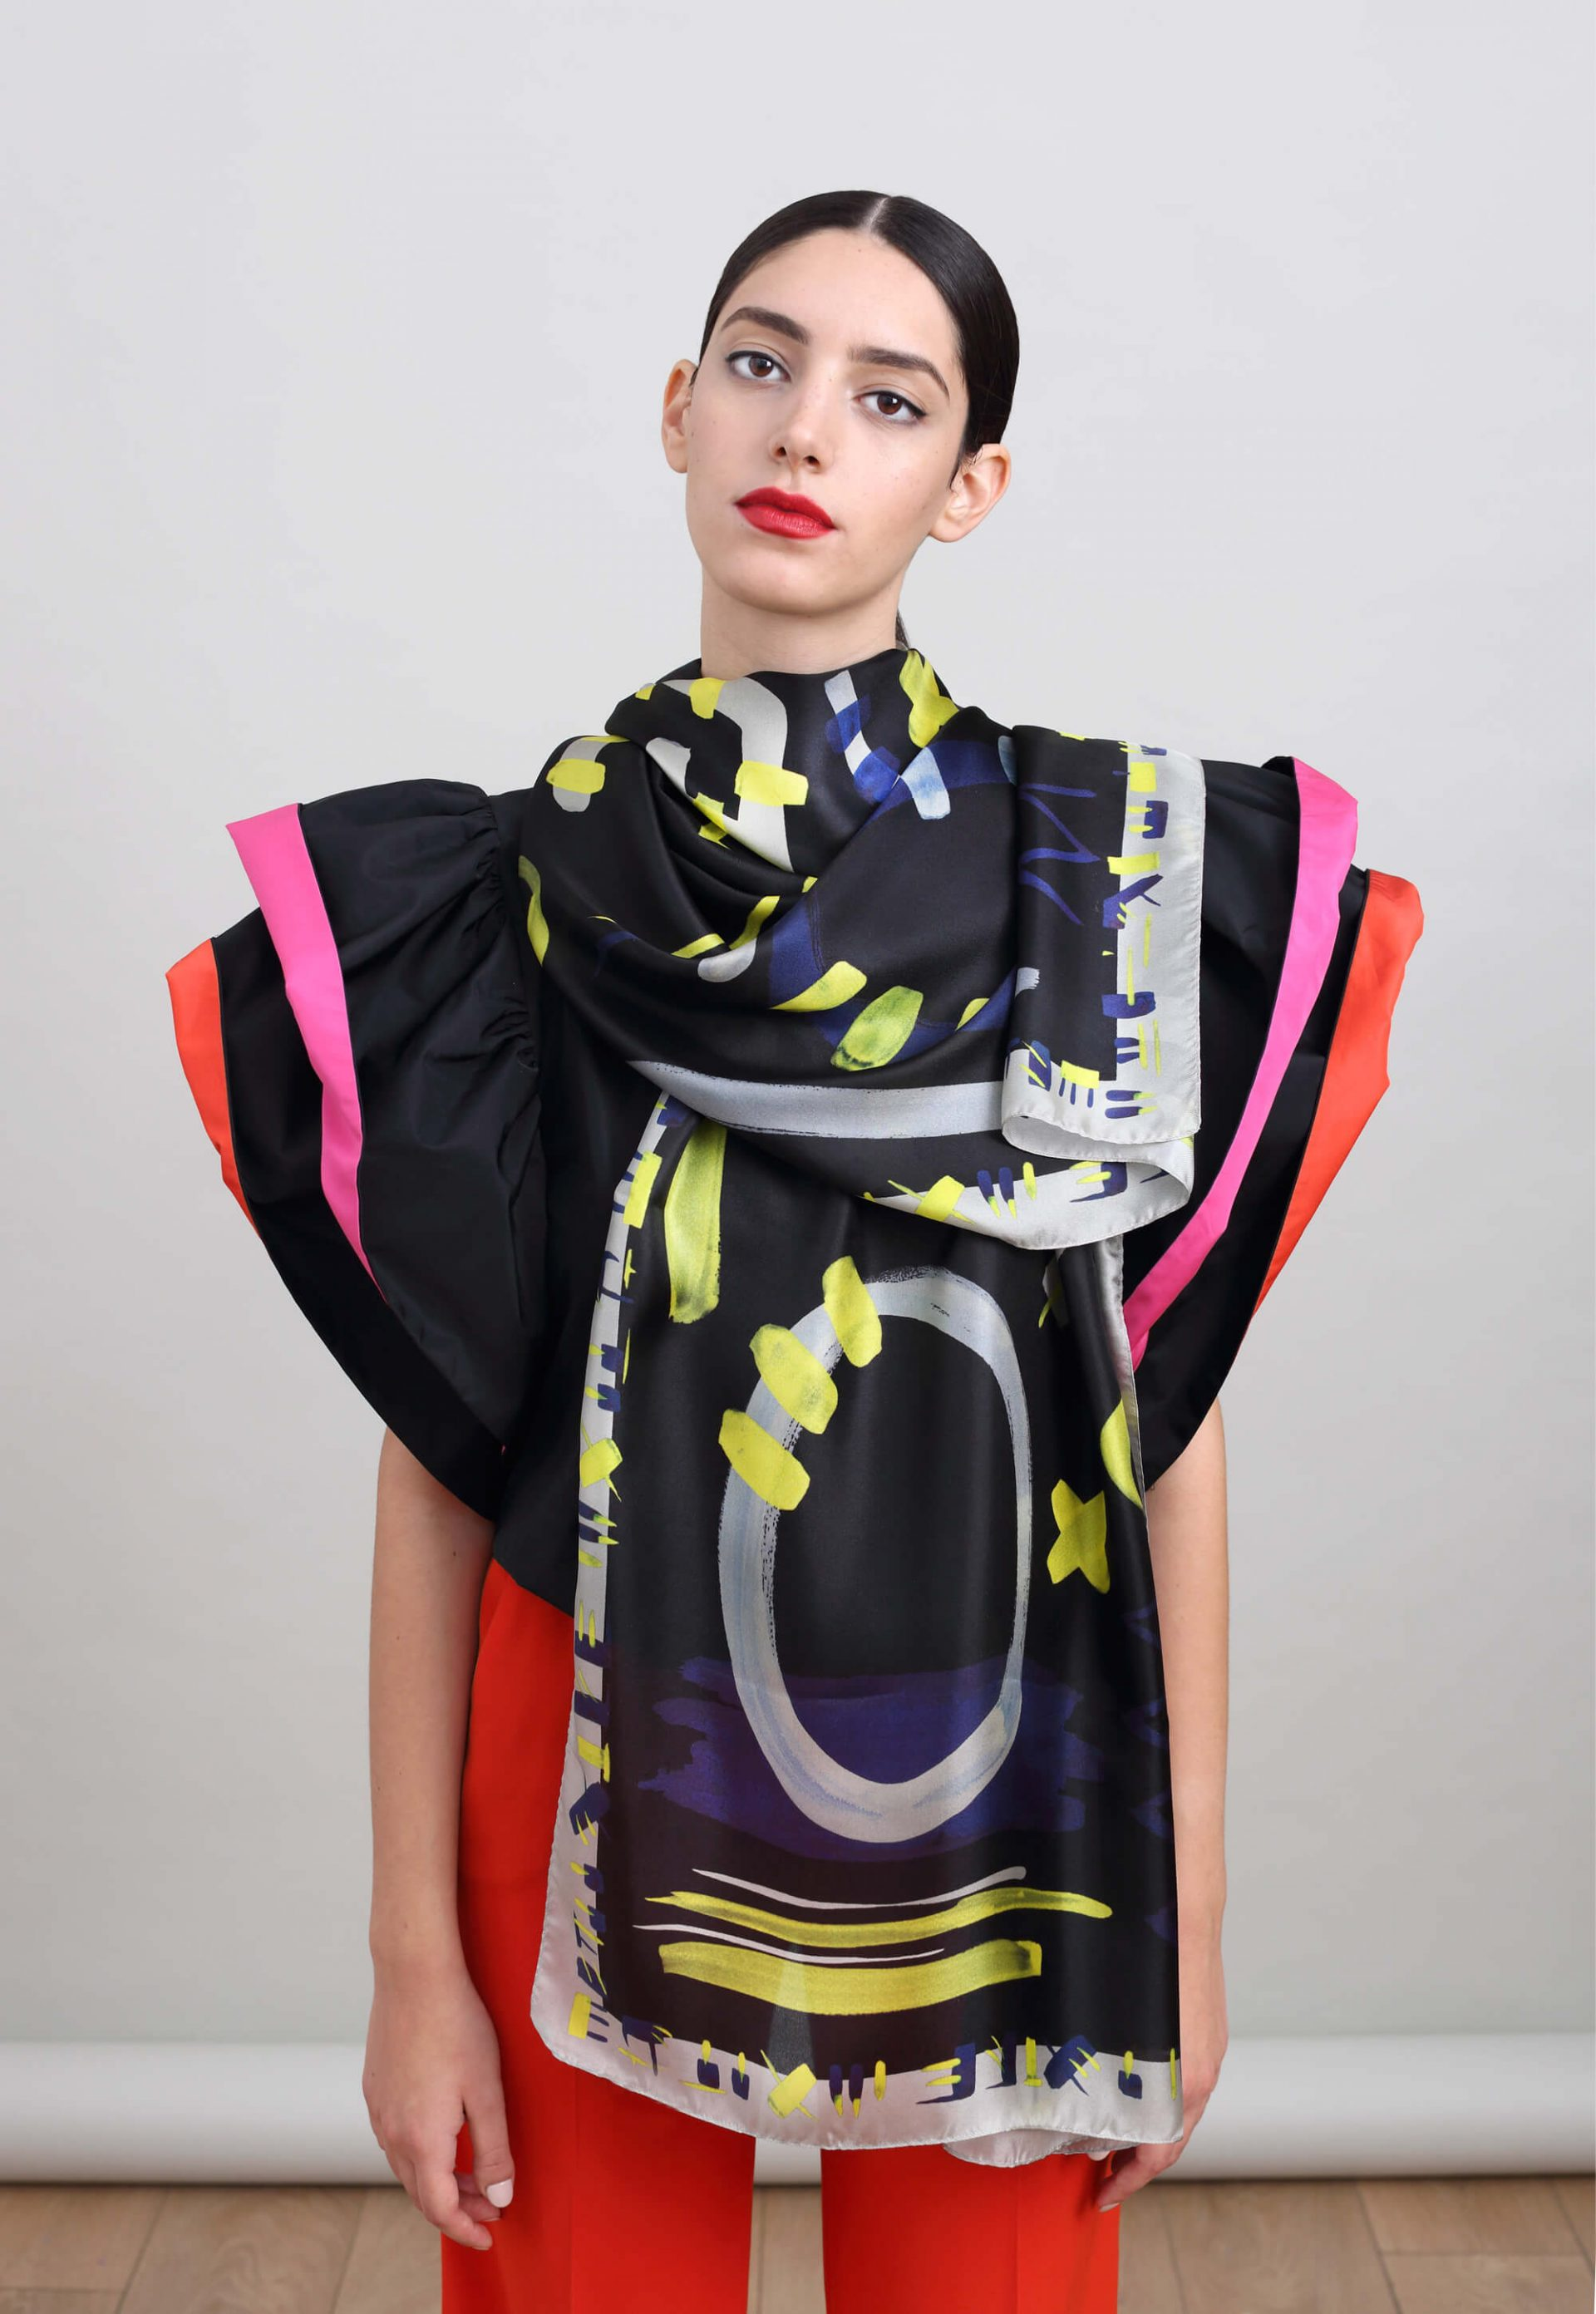 printed silk scarf in bold black, neon and blue. Oblong printed shawl